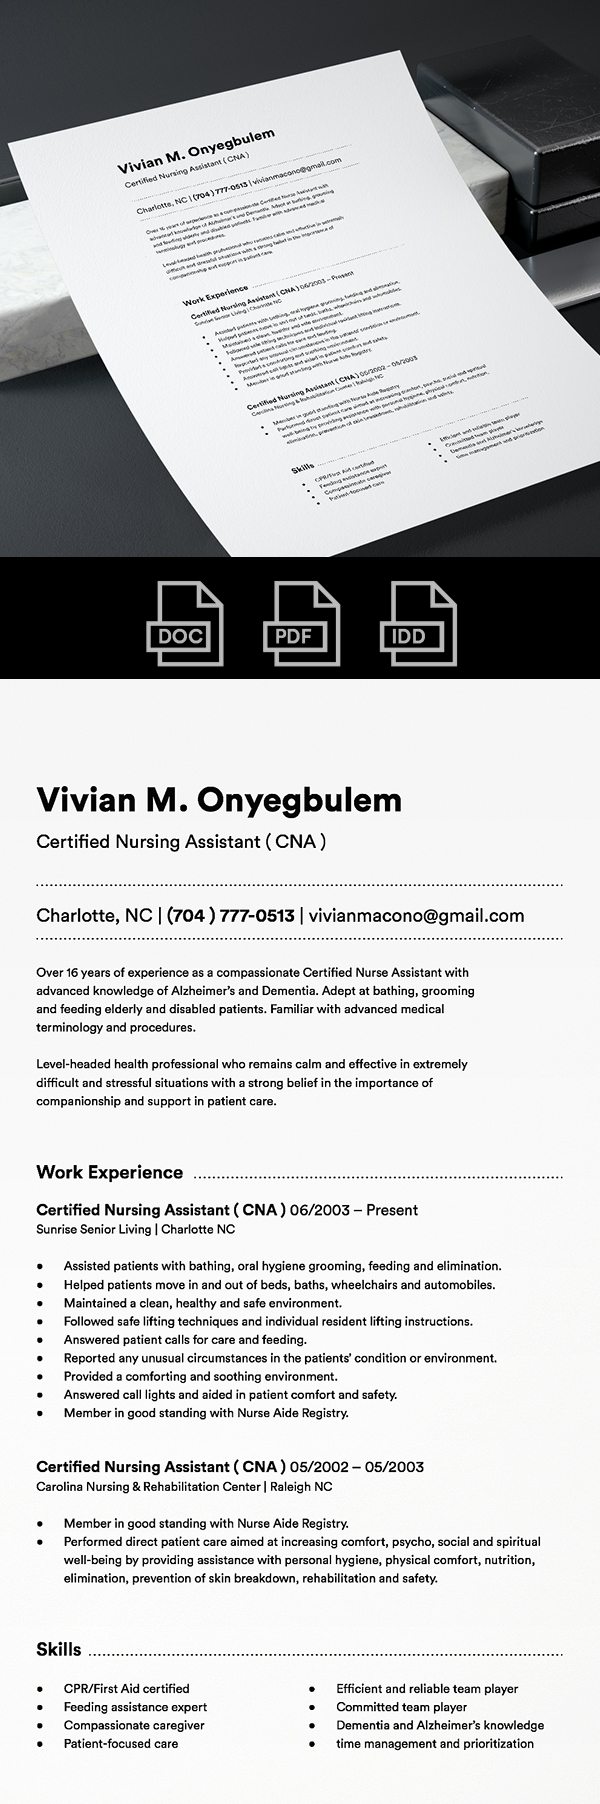 25 Fresh Free Professional Resume Templates - 3